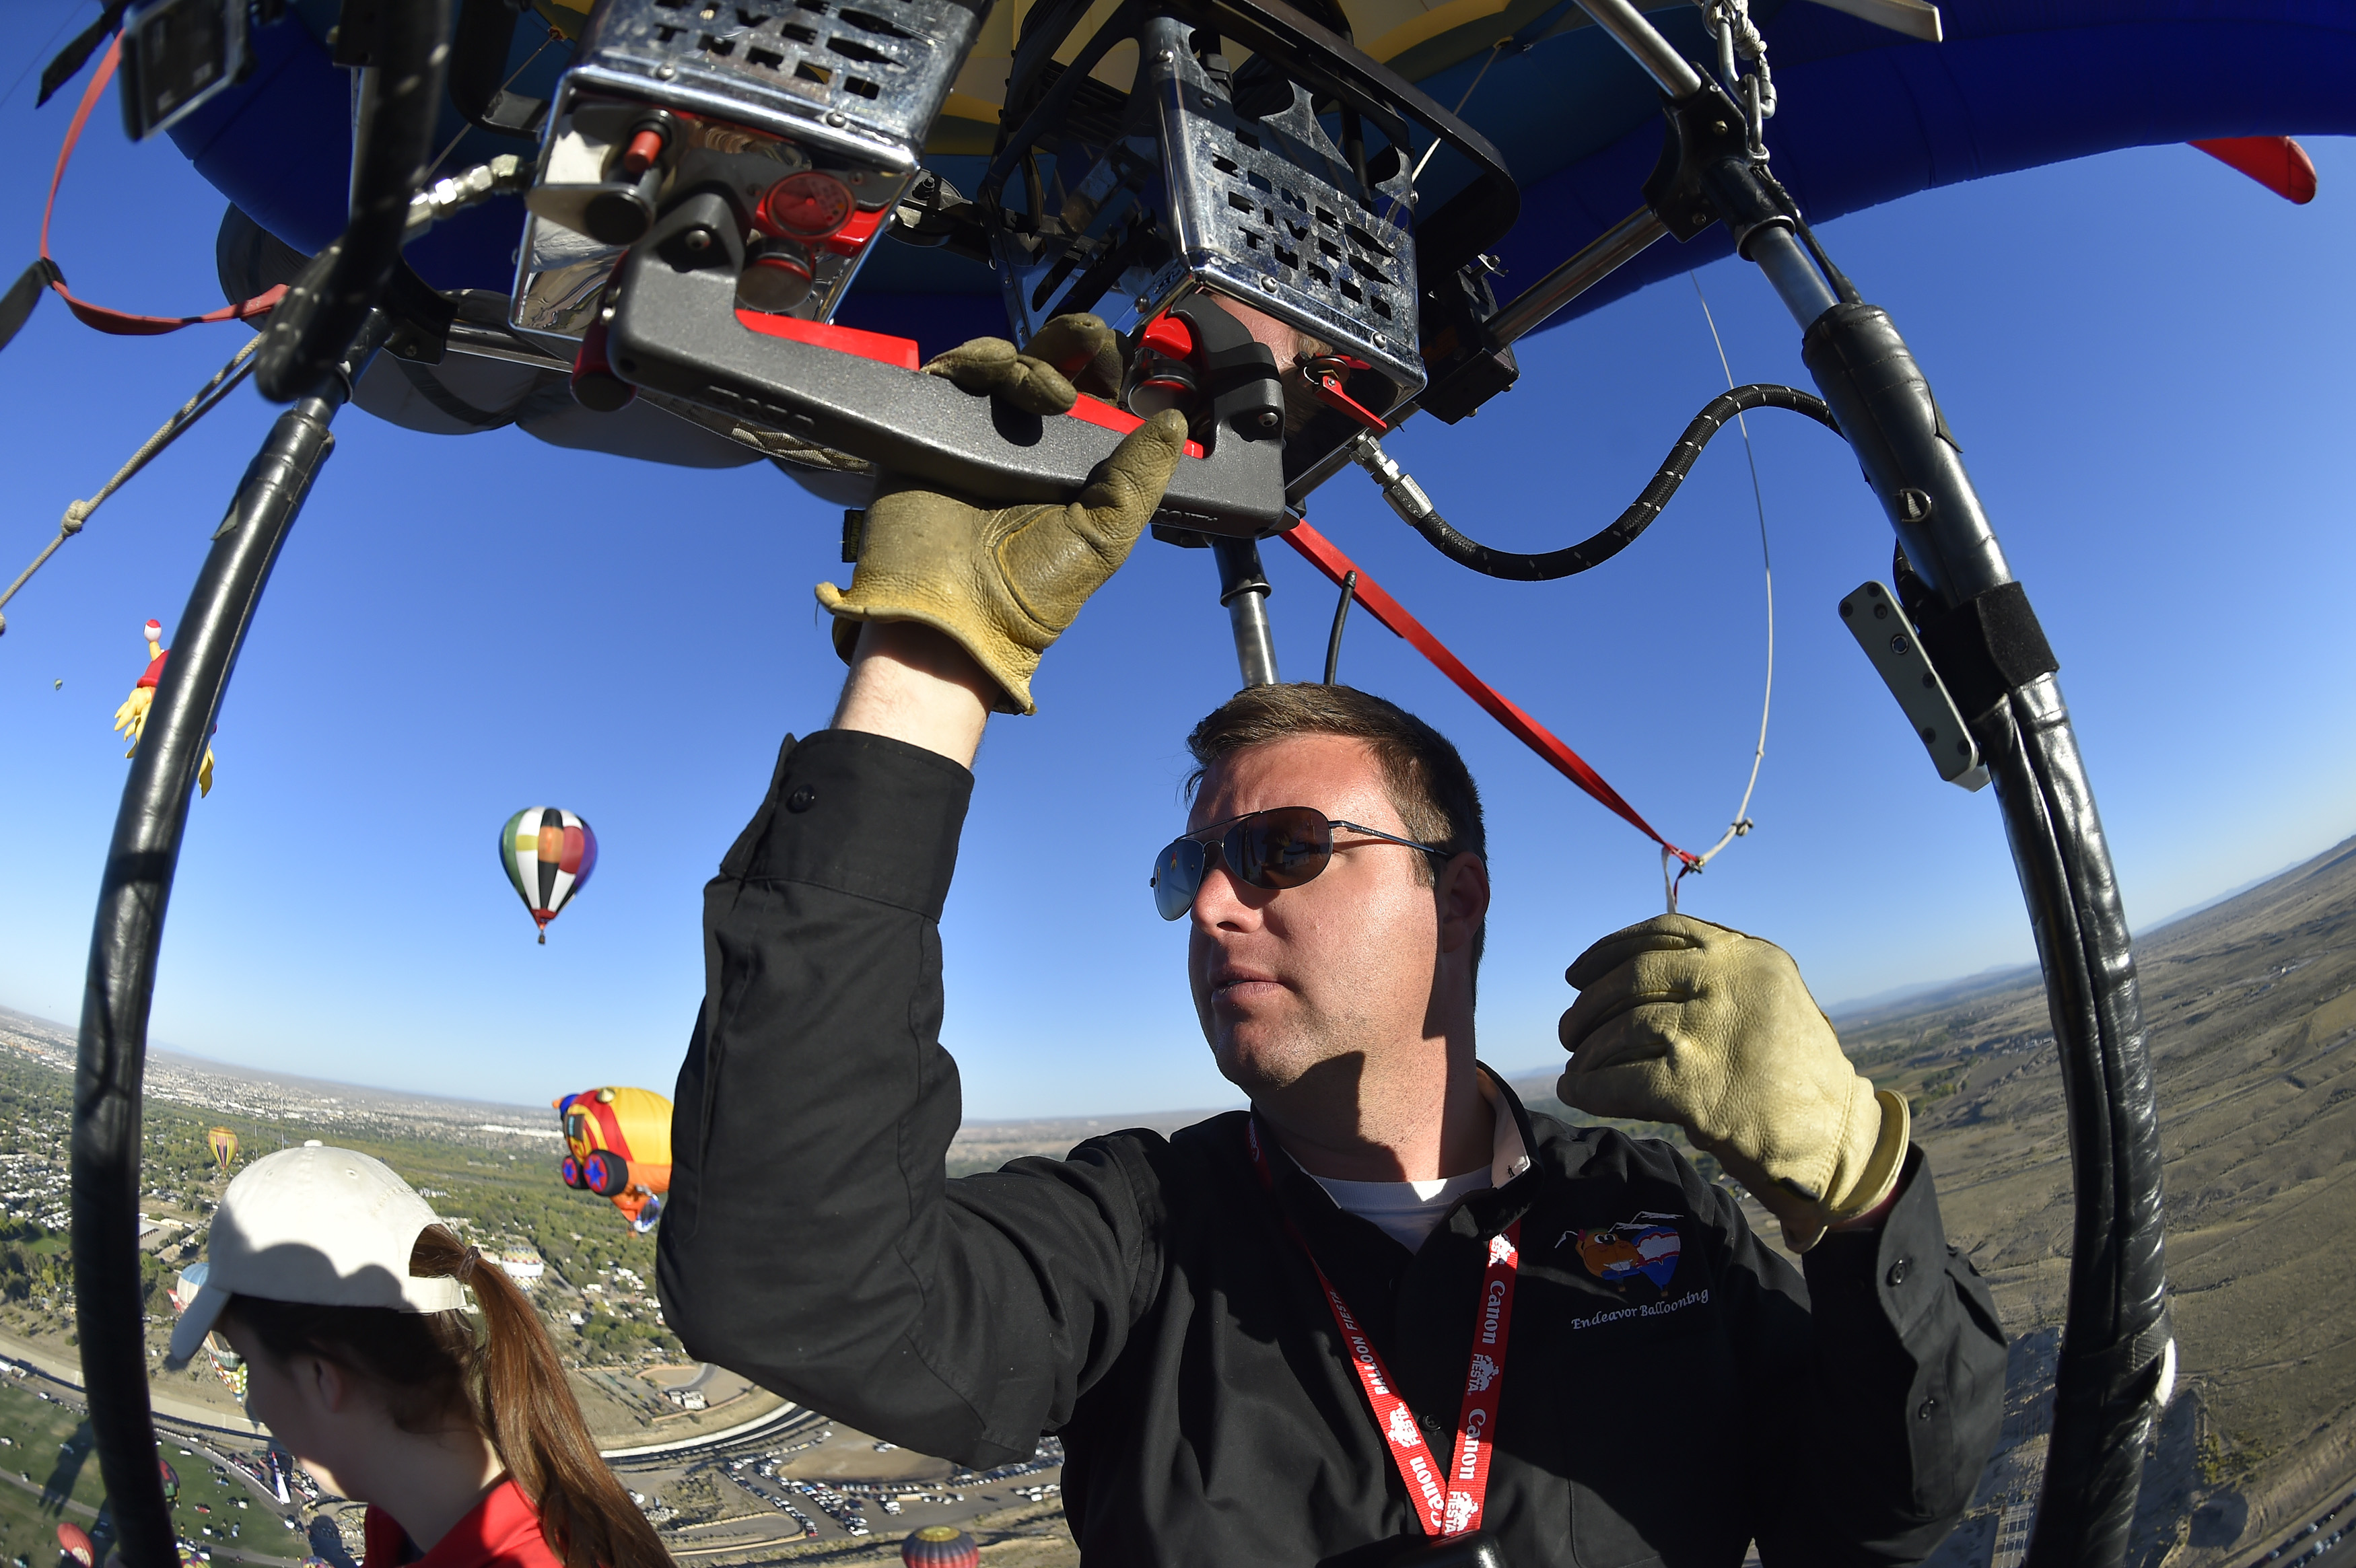 Pilot Colin Graham adds lift to his balloon during the 45th Albuquerque International Balloon Fiesta. Photo by David Tulis.